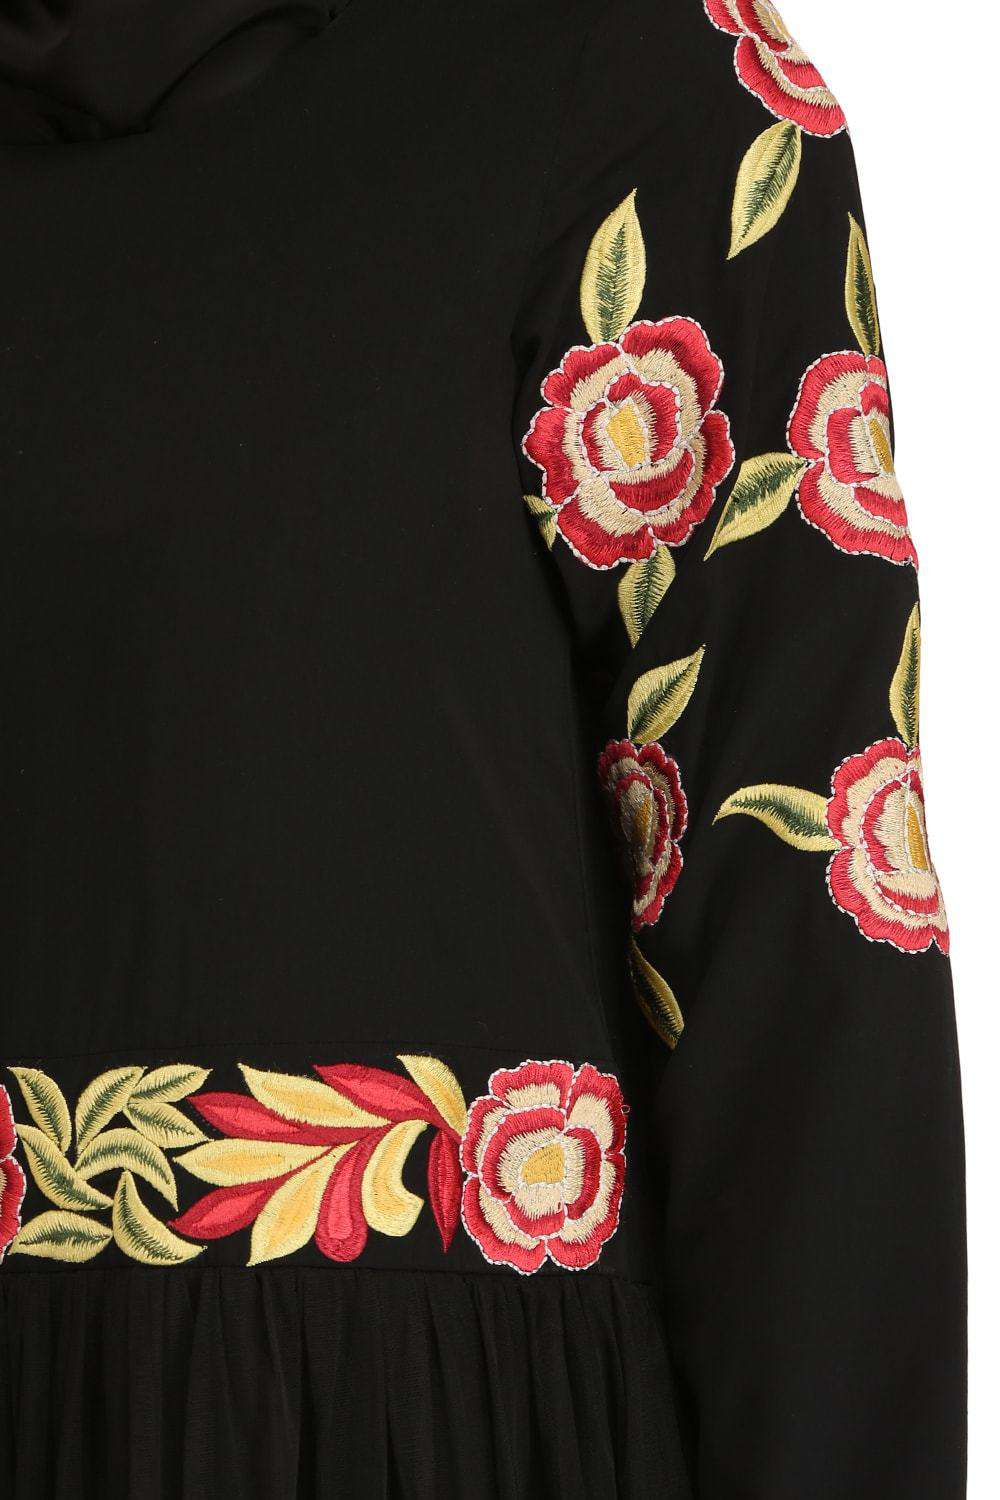 Mumina Black Nida & Net Abaya Embroidery